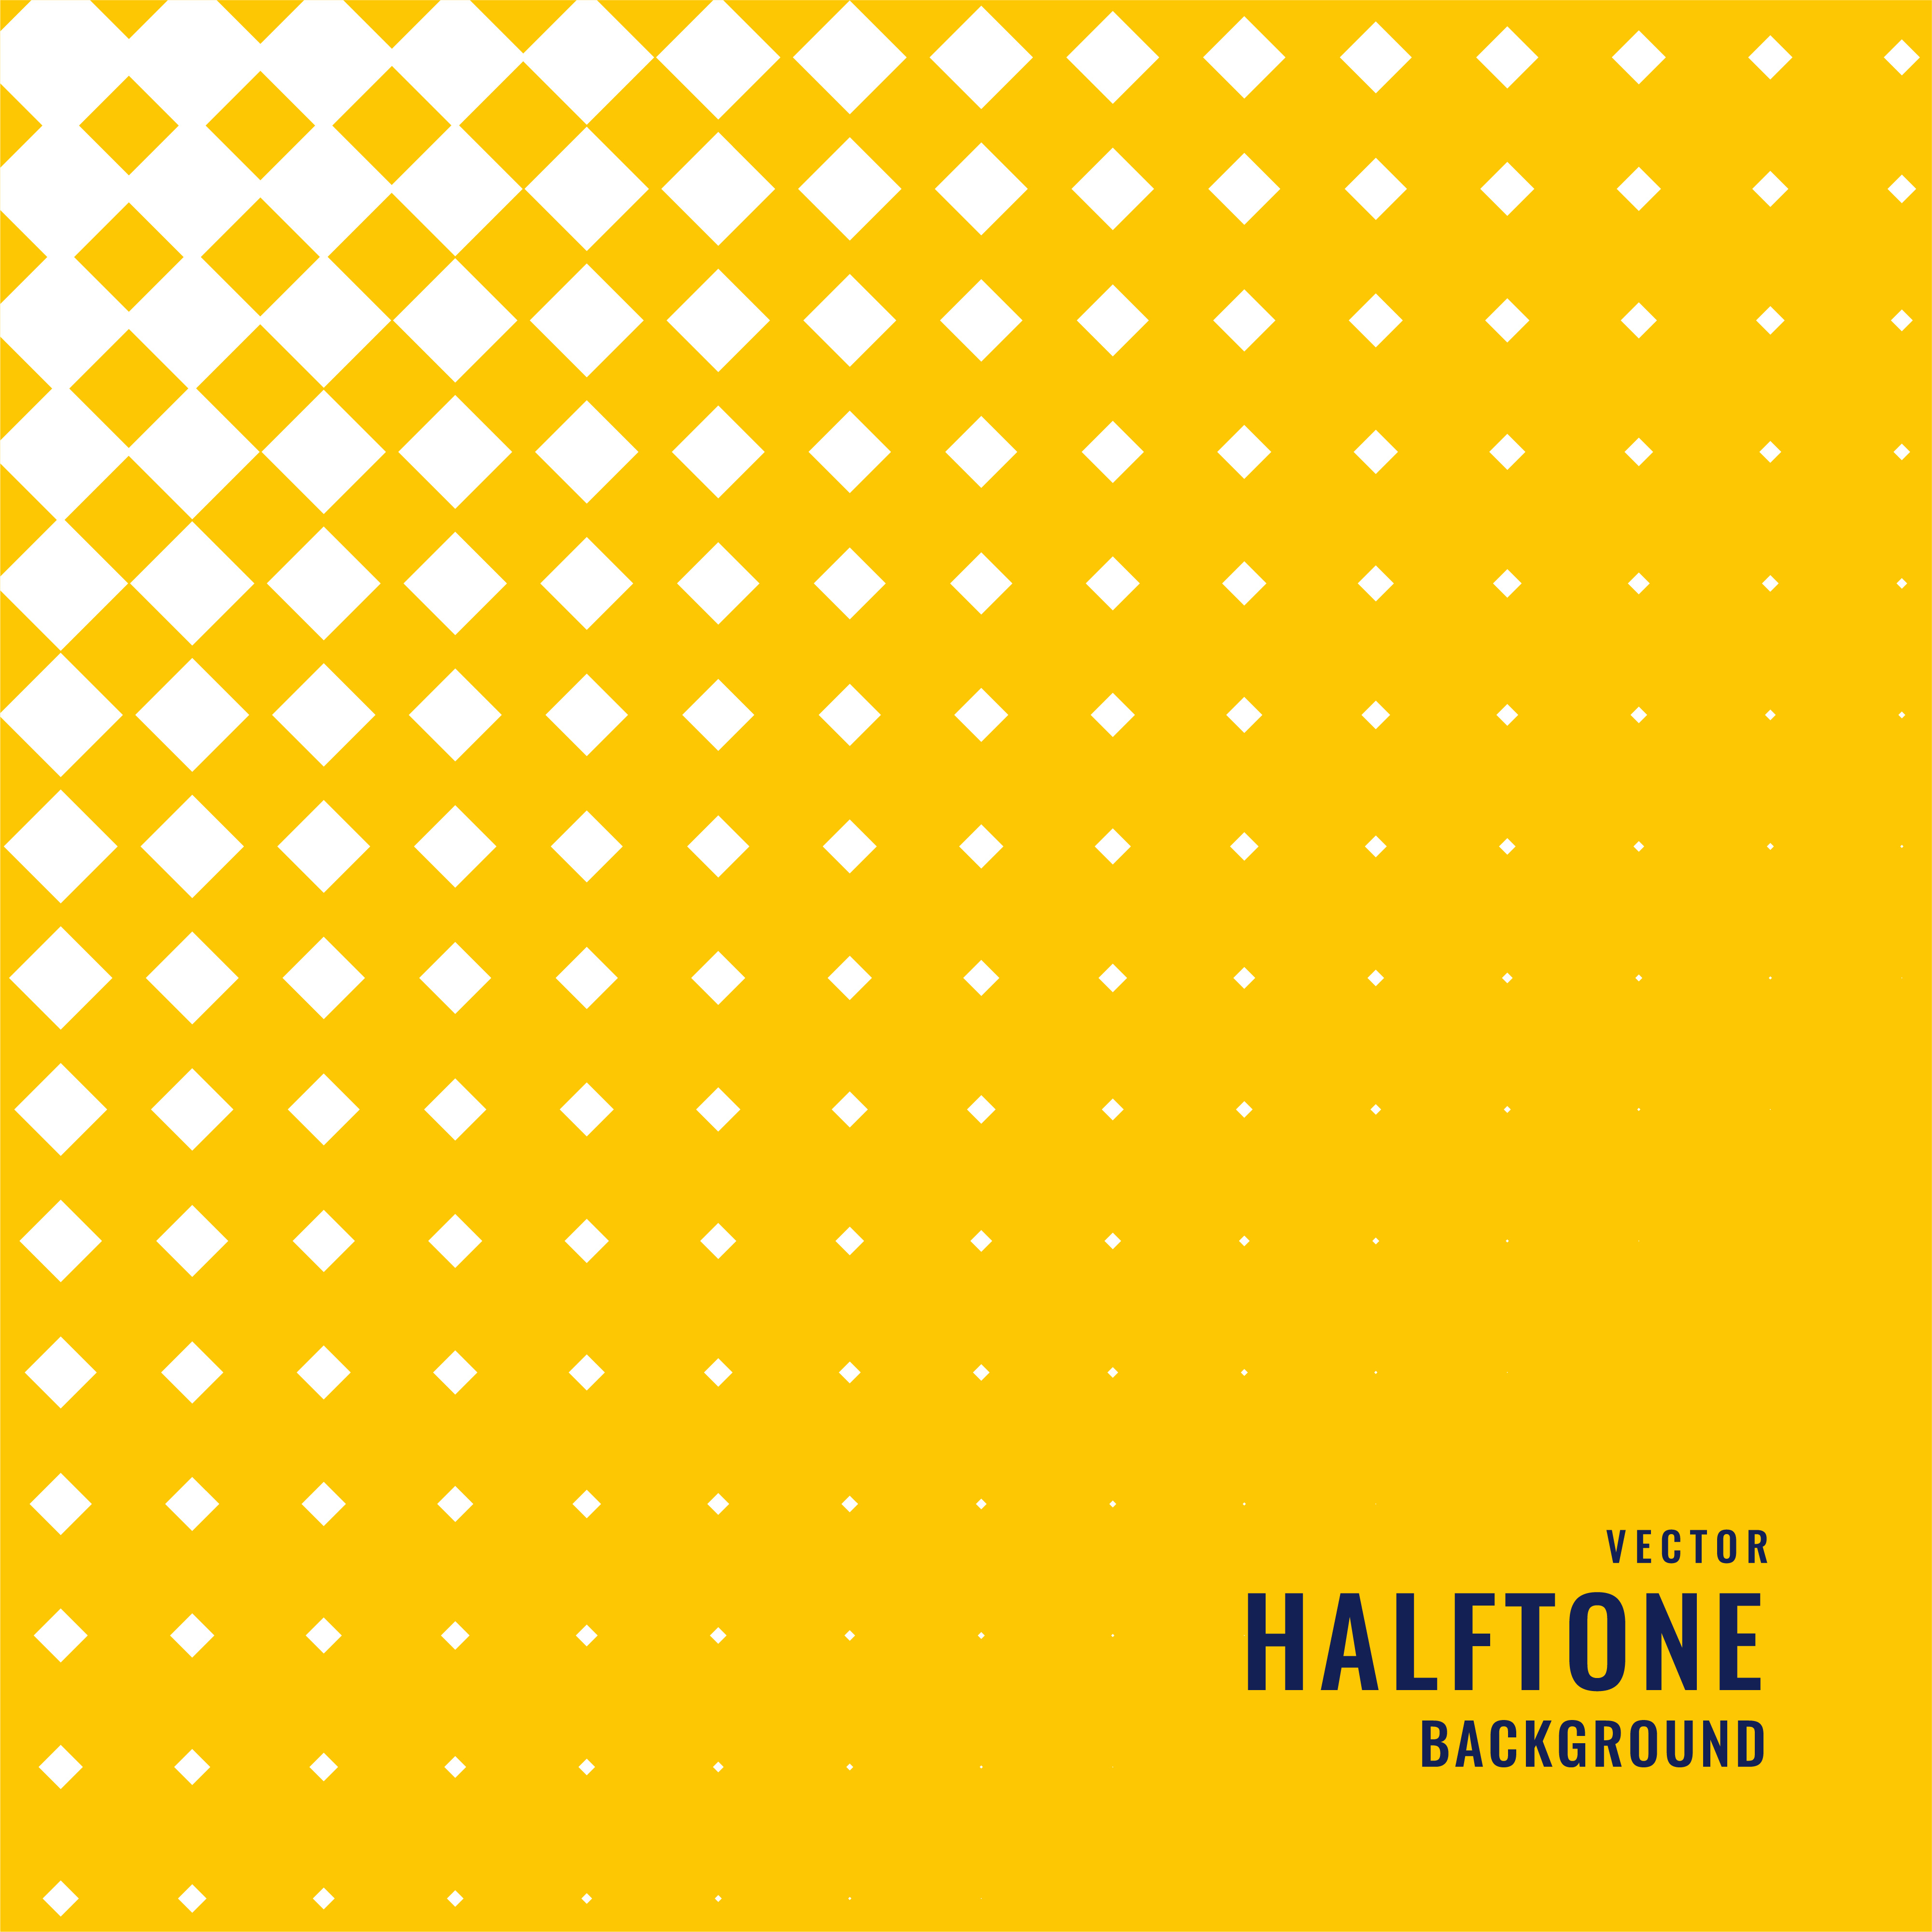 yellow background with white halftone pattern - Download ...